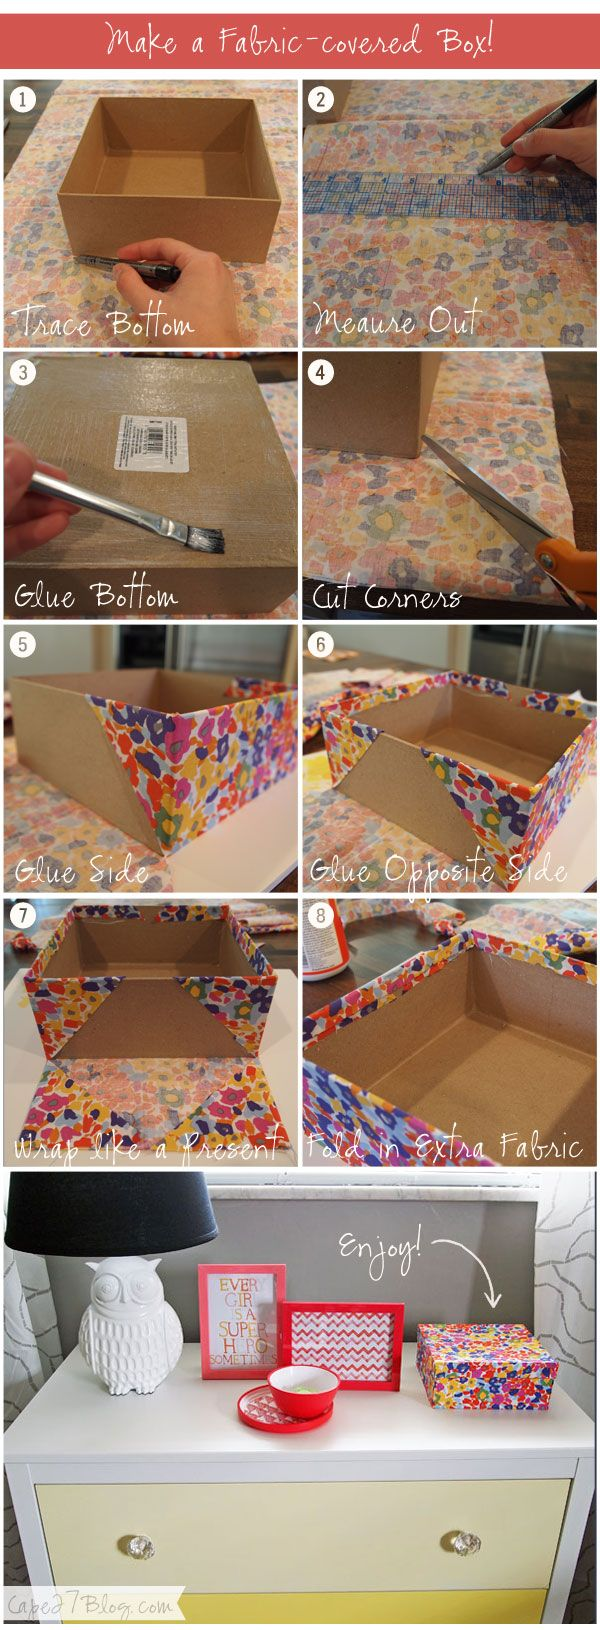 Make a Fabric-covered Box: